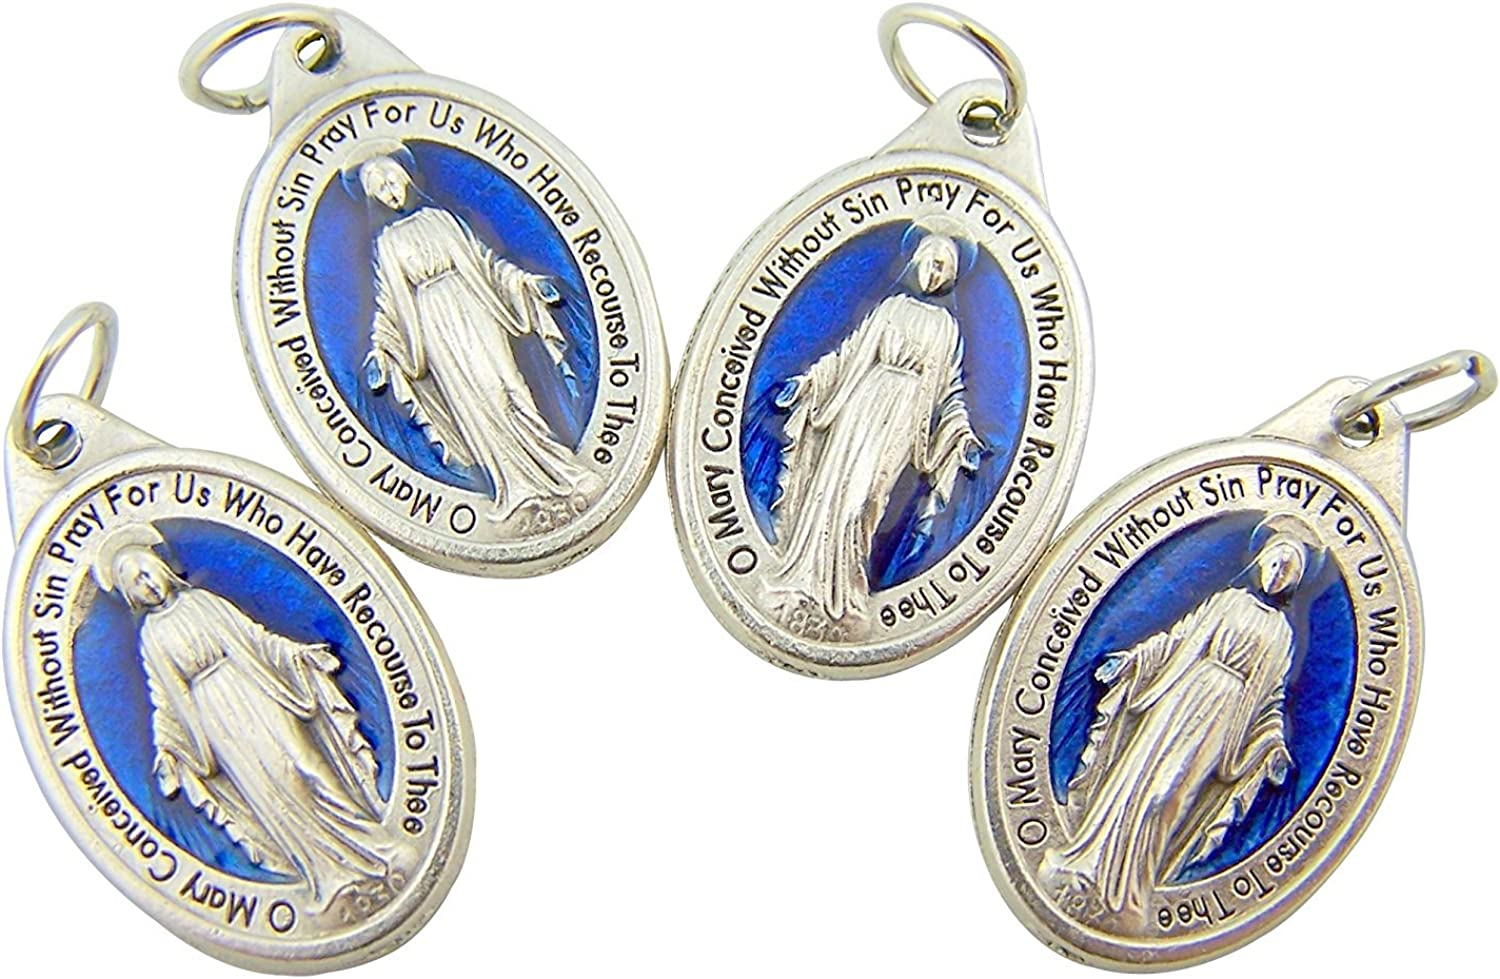 Religious Gifts Men's or Women's Catholic Silver Tone and Royal Blue Miraculous Medal Mary Devotional Charm Pendant, Set of 4